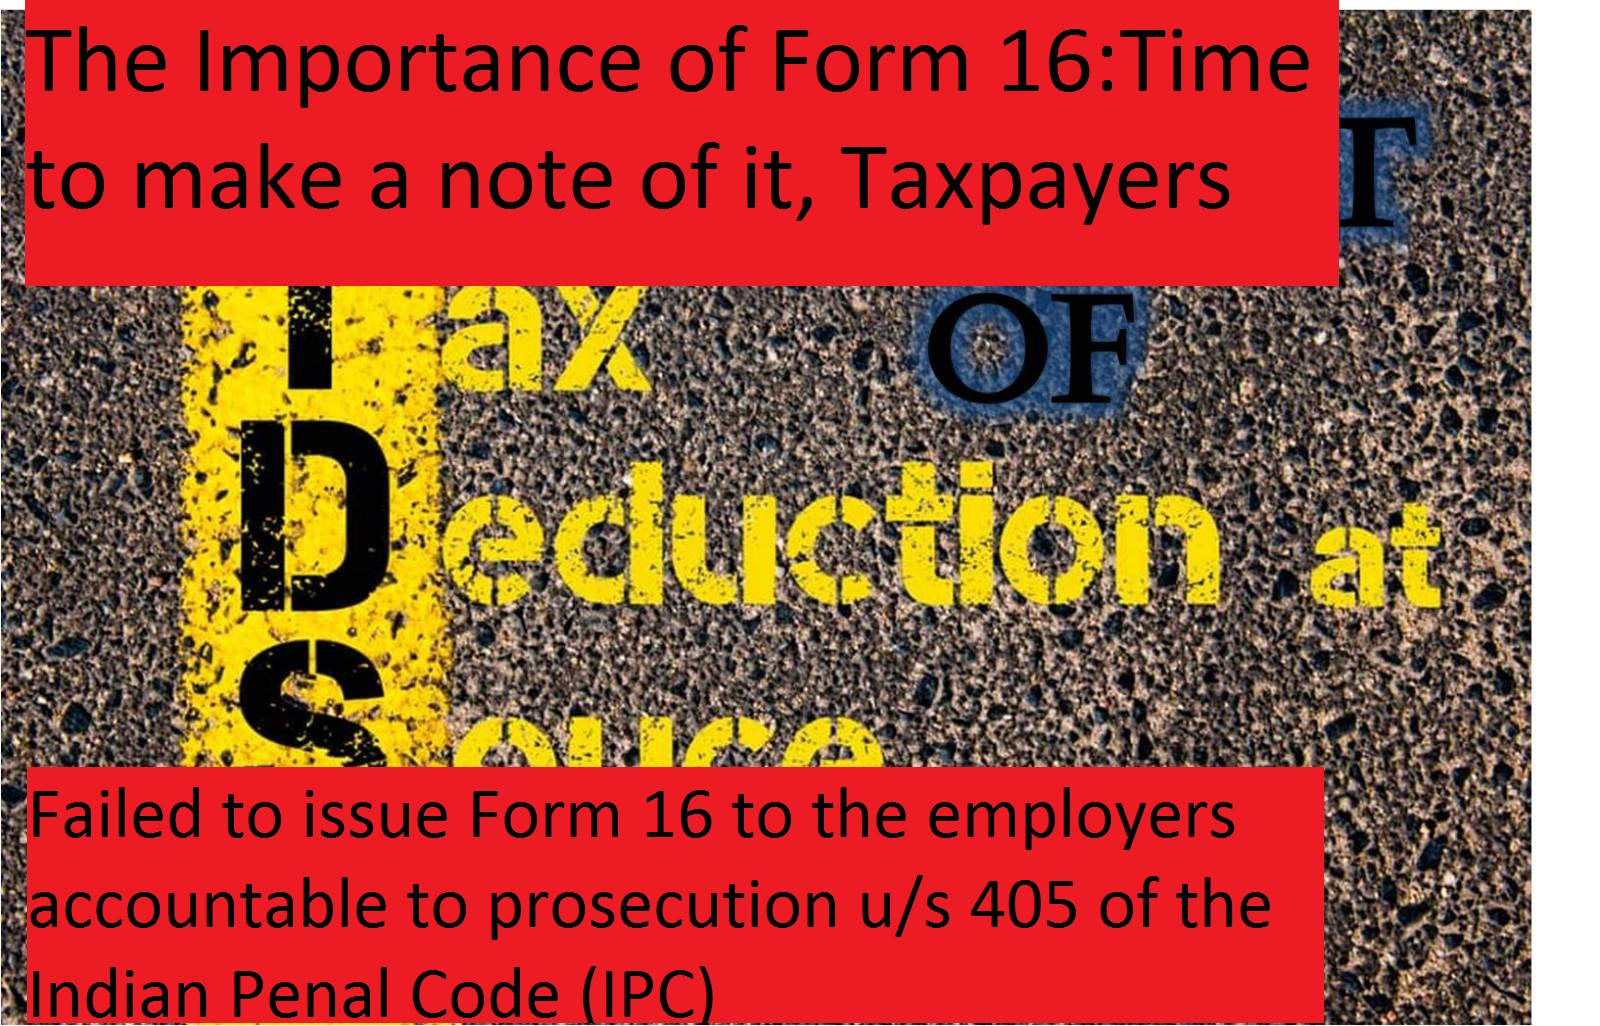 The Importance of Form 16.